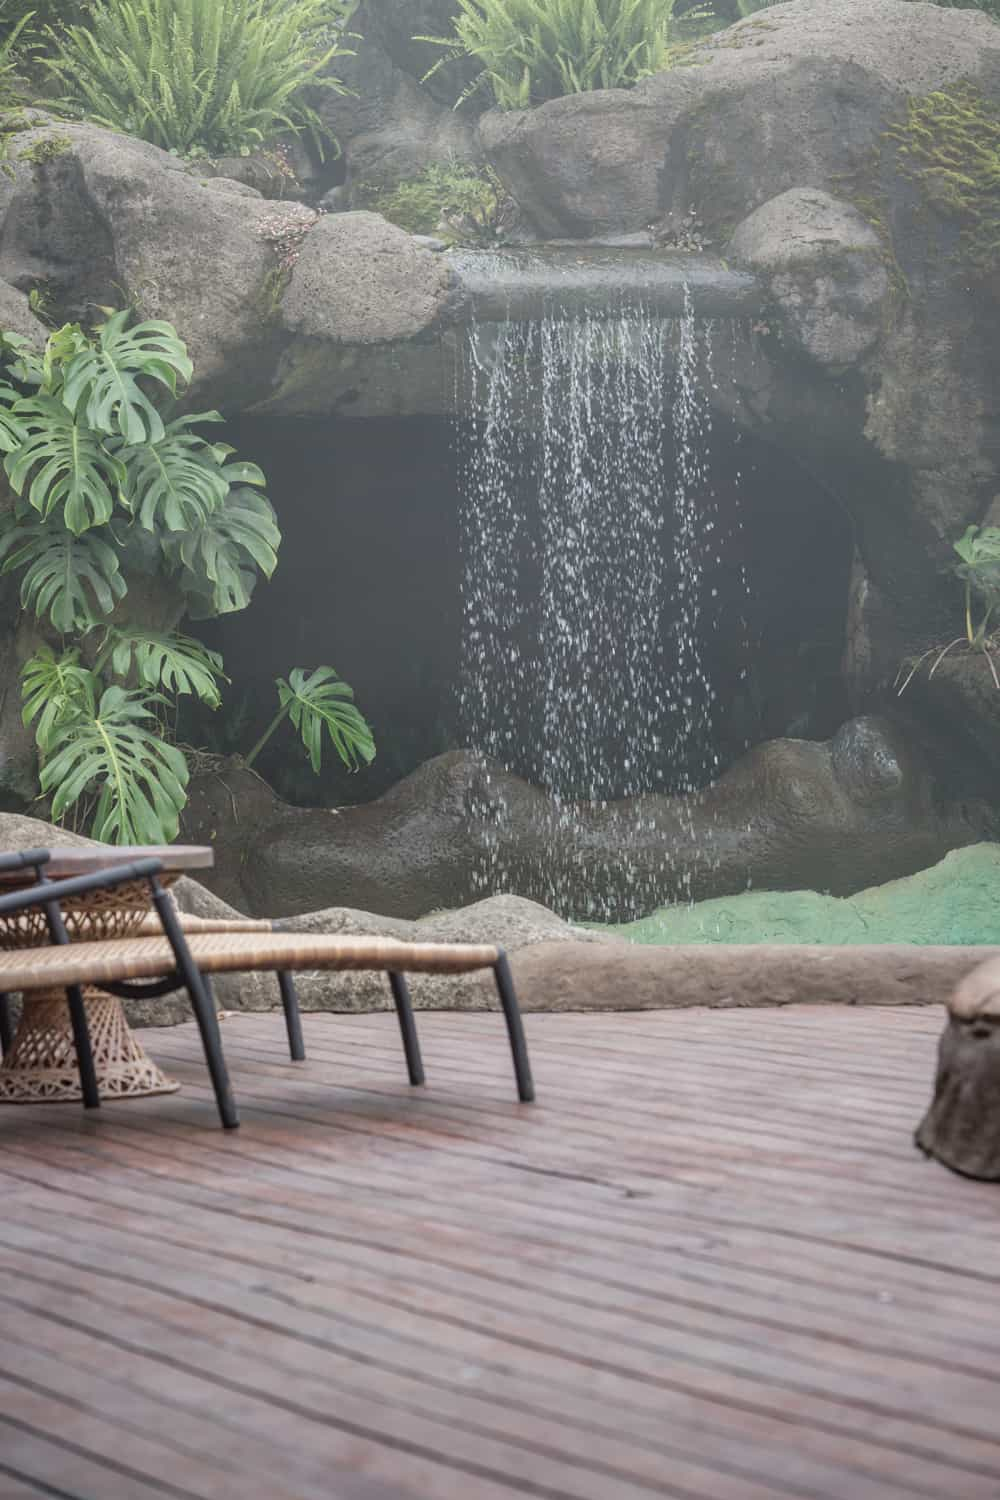 Picture of deck chairs and waterfall at Peace Lodge wedding venue.